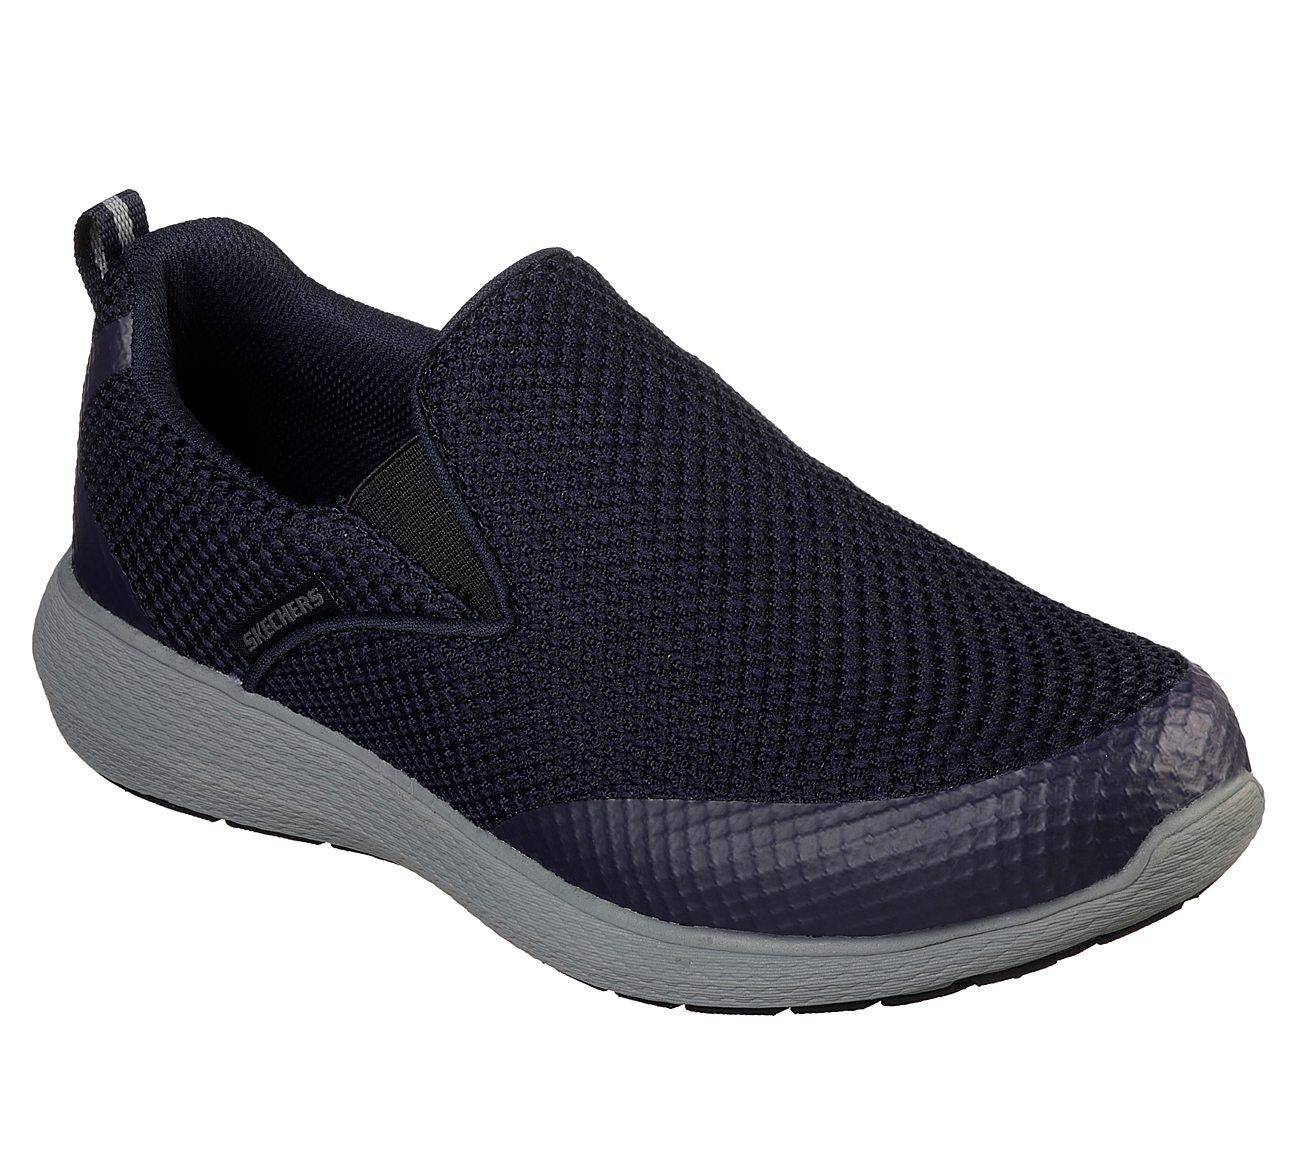 Skechers - Kulow - Whitewater Sepatu Sneakers Pria - Navy a75e62a3f3